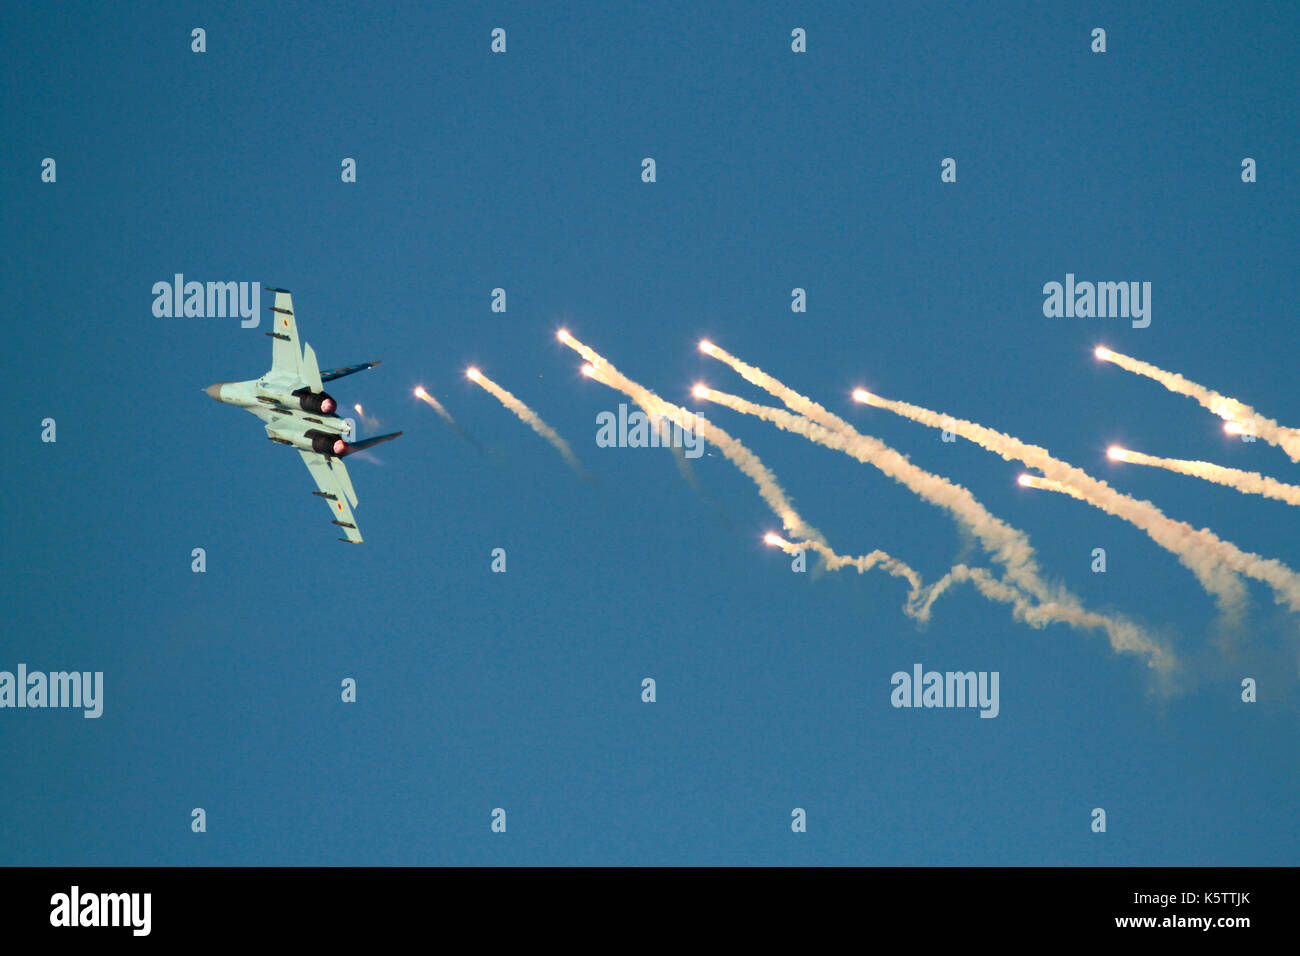 Military aviation. Sukhoi Su-27 Flanker fighter jet aircraft of the Ukraine Air Force releasing flares - Stock Image